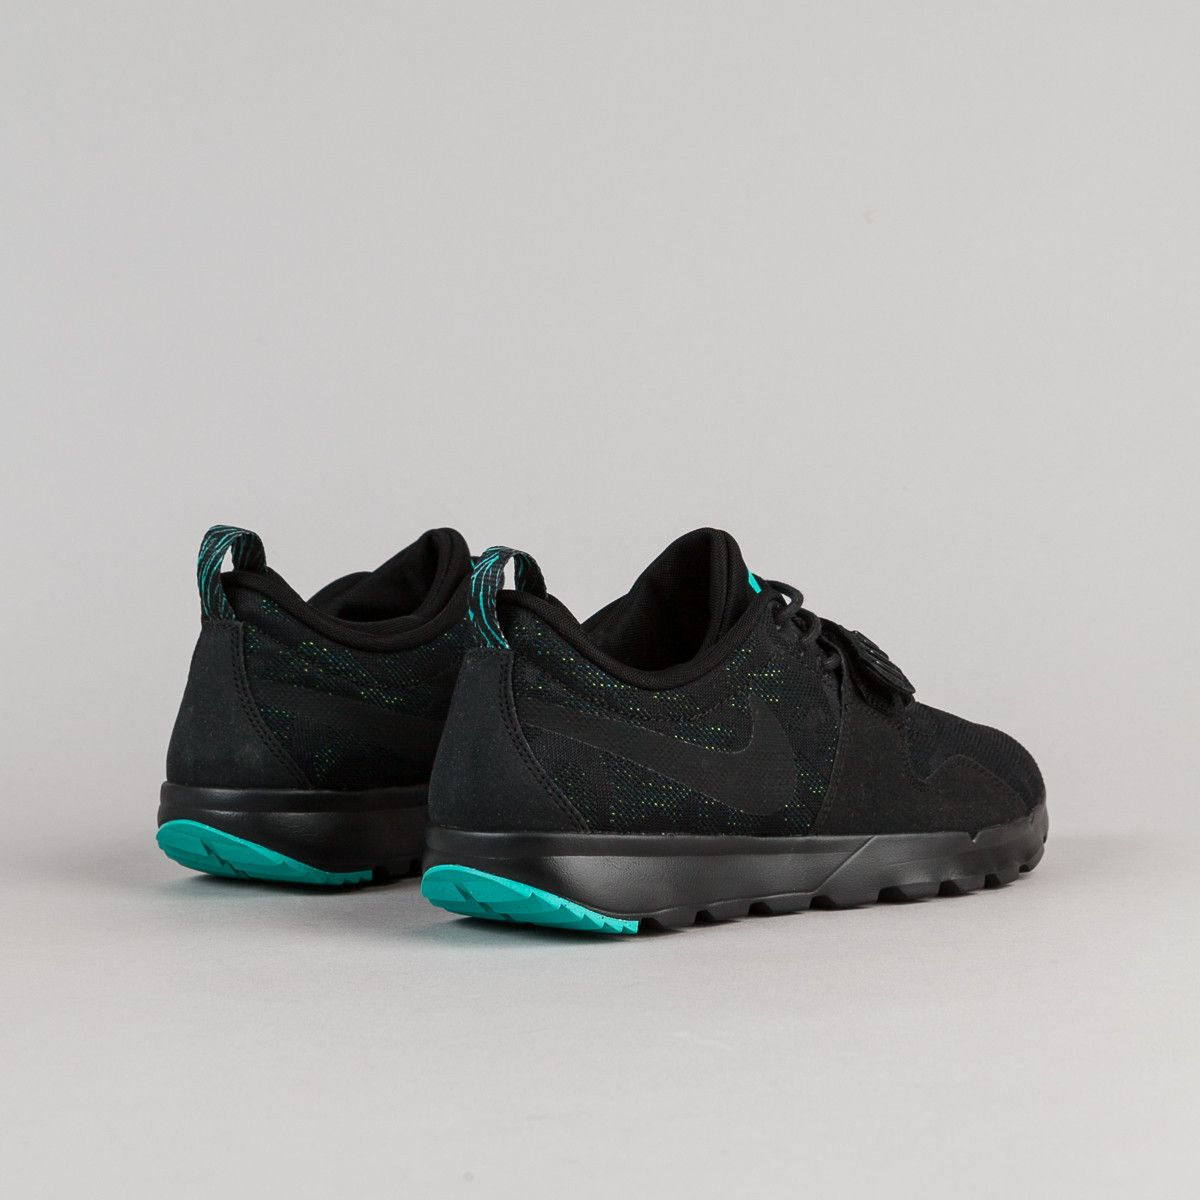 nike sb trainerendor black black & jade shoes